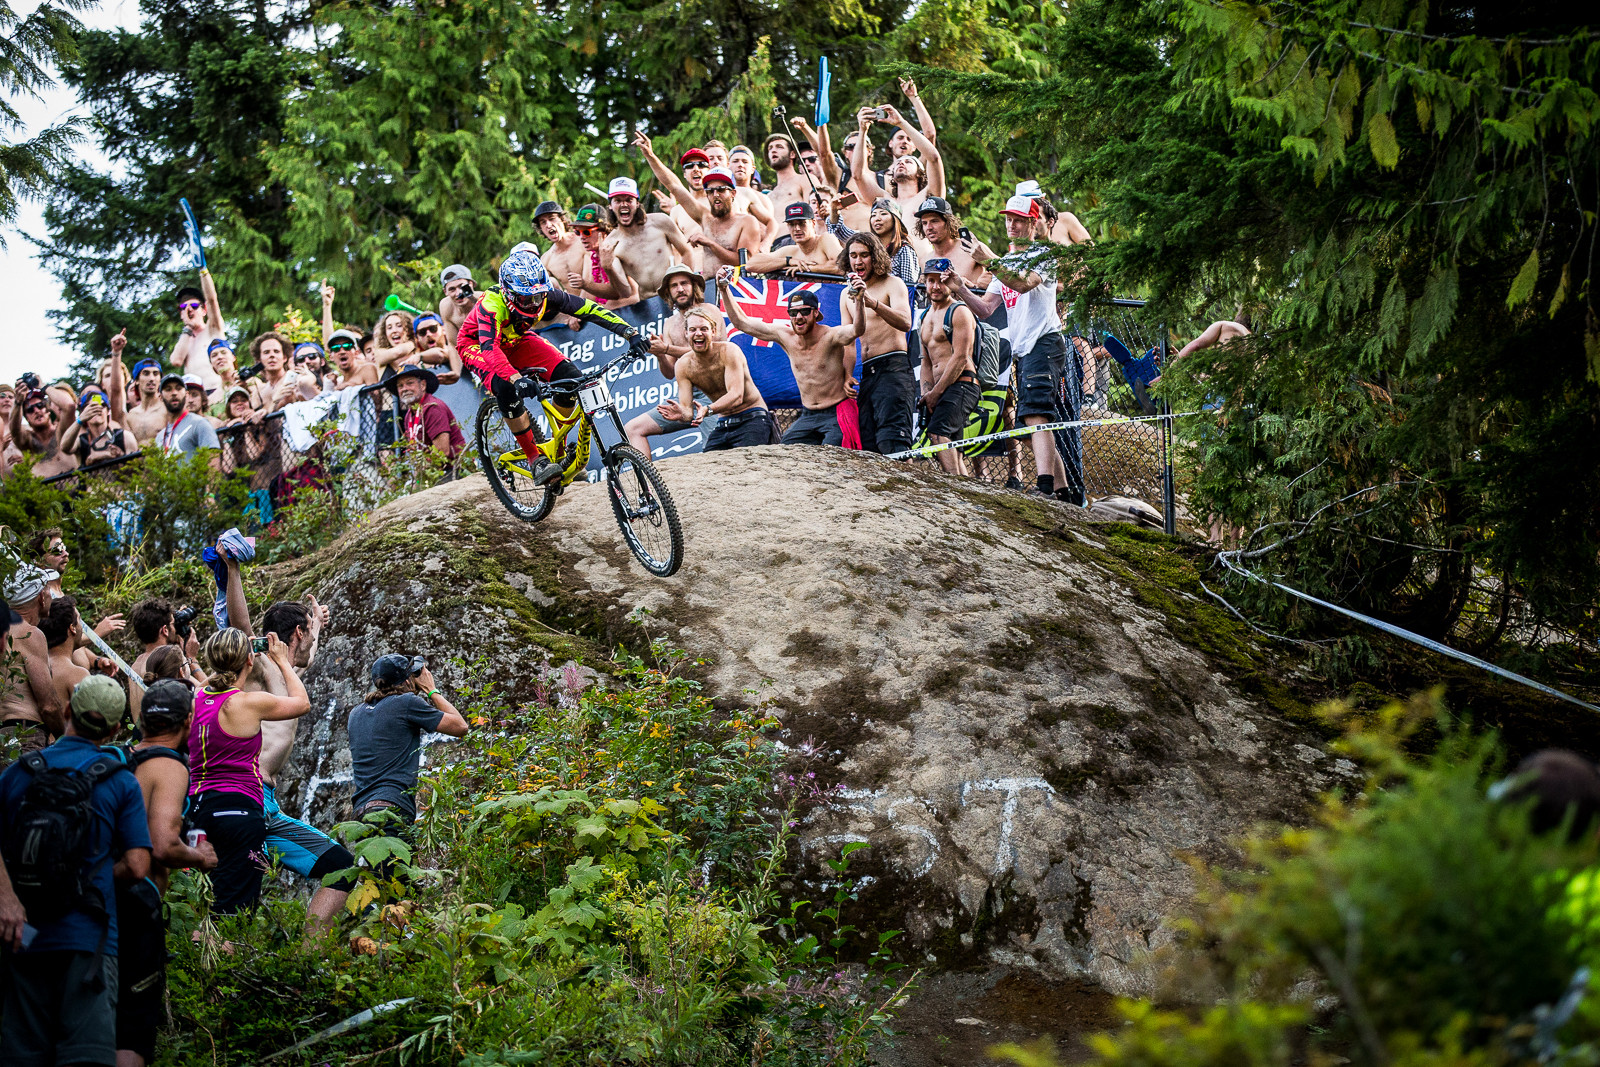 c5c3a018434 Steve Smith Passes Away at Age 26 - Mountain Bikes Press Releases - Vital  MTB